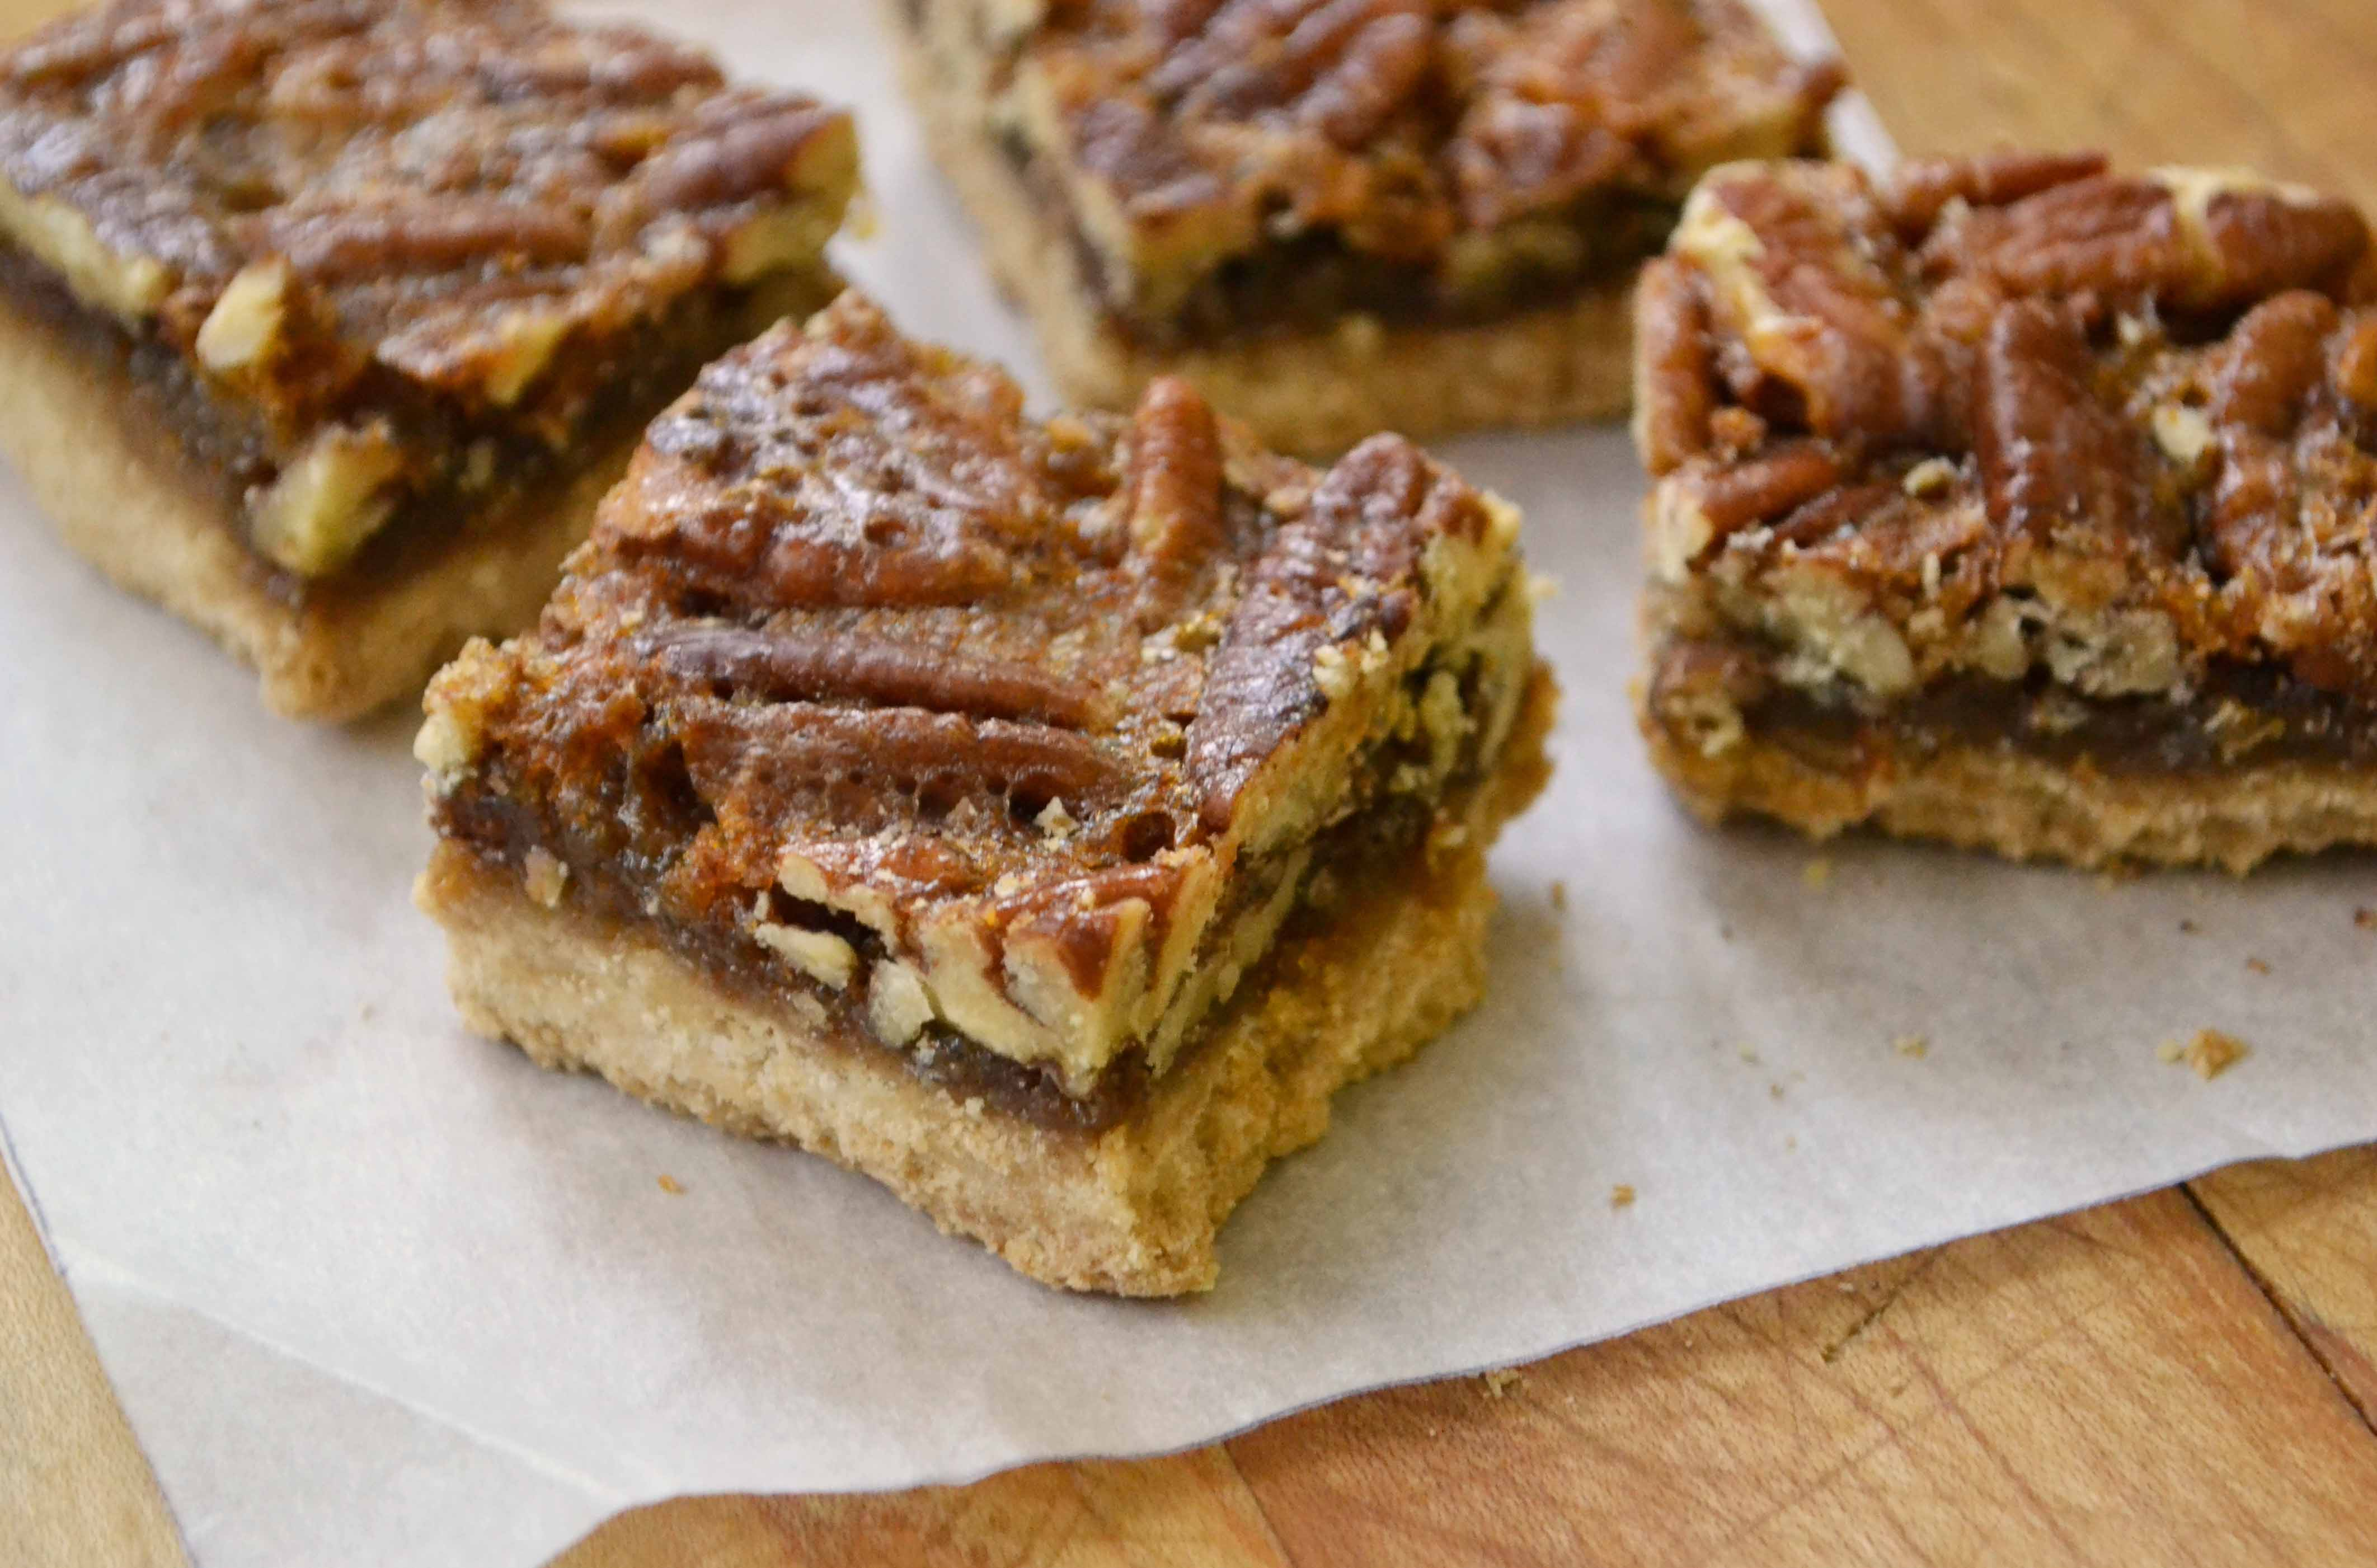 Eat Pecan Pie With Less Guilt